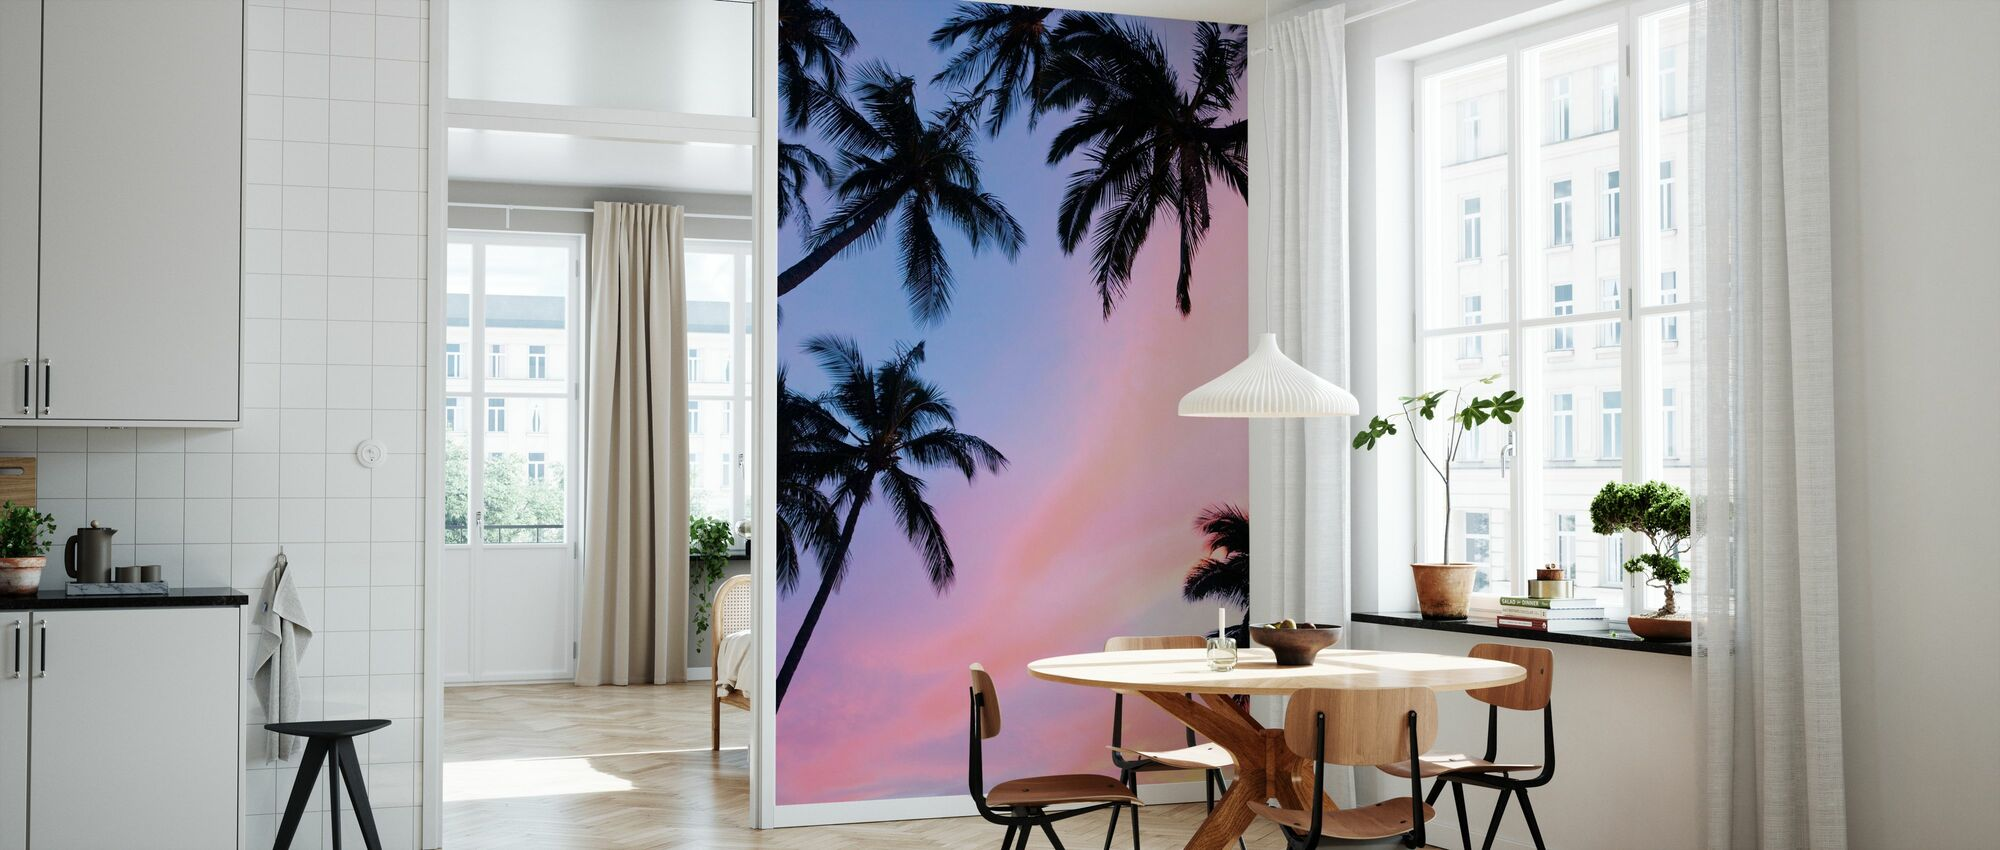 Palm Tree and Colorful Sky - Wallpaper - Kitchen